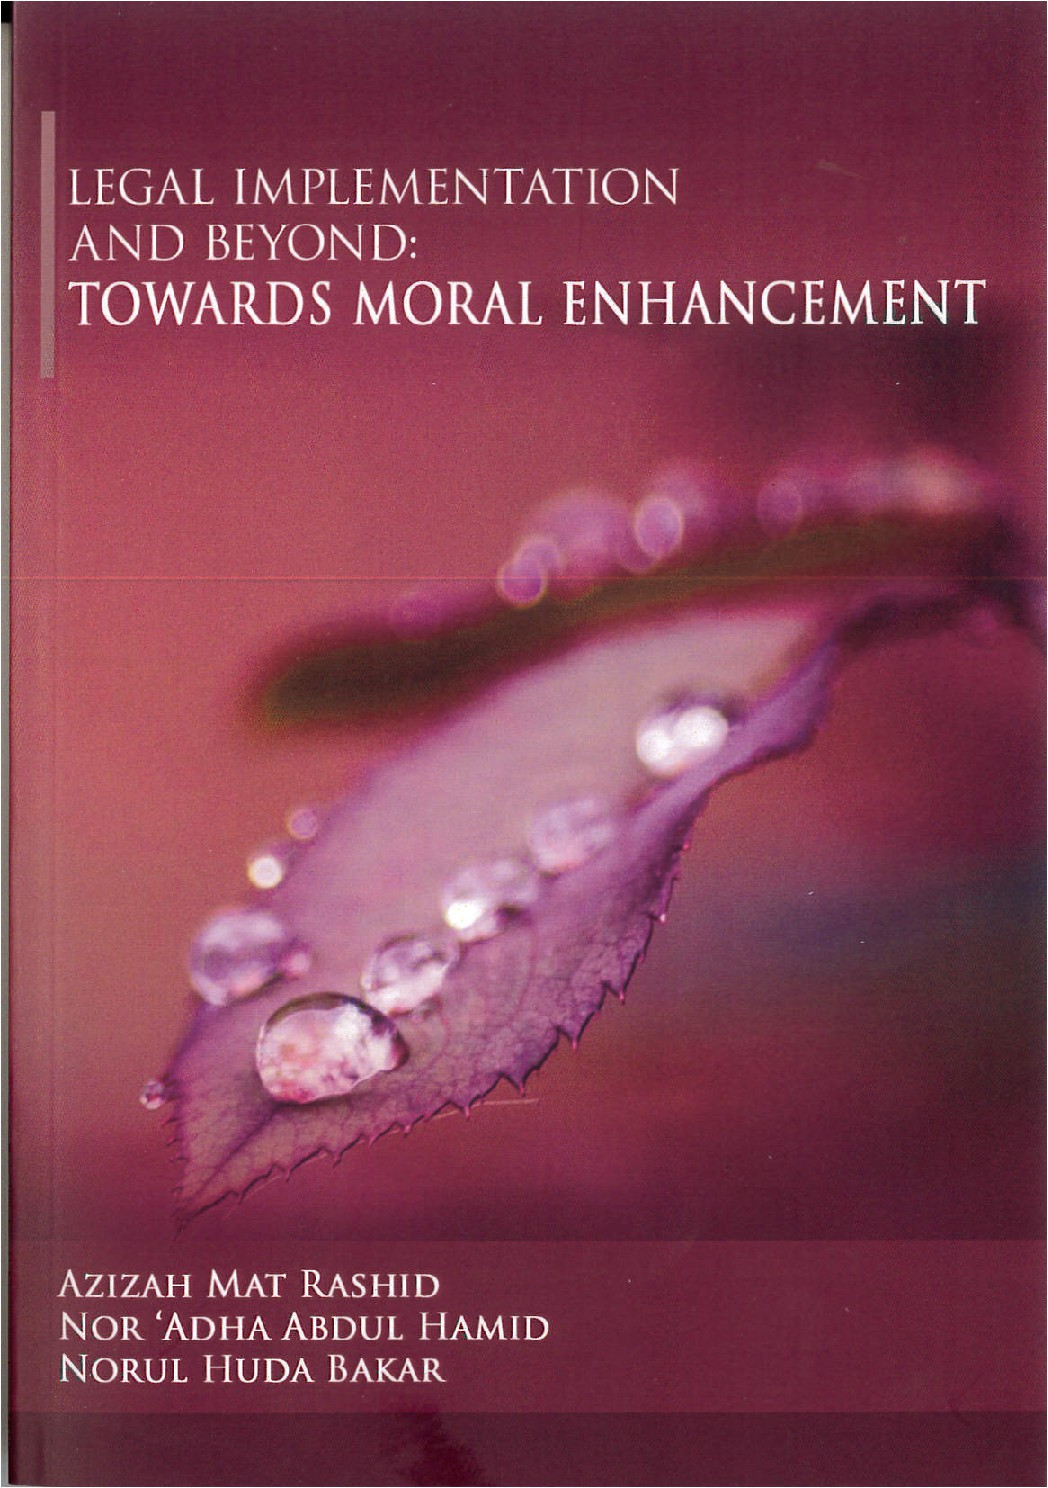 Legal Implementation And Beyond:Towards Moral Enha...